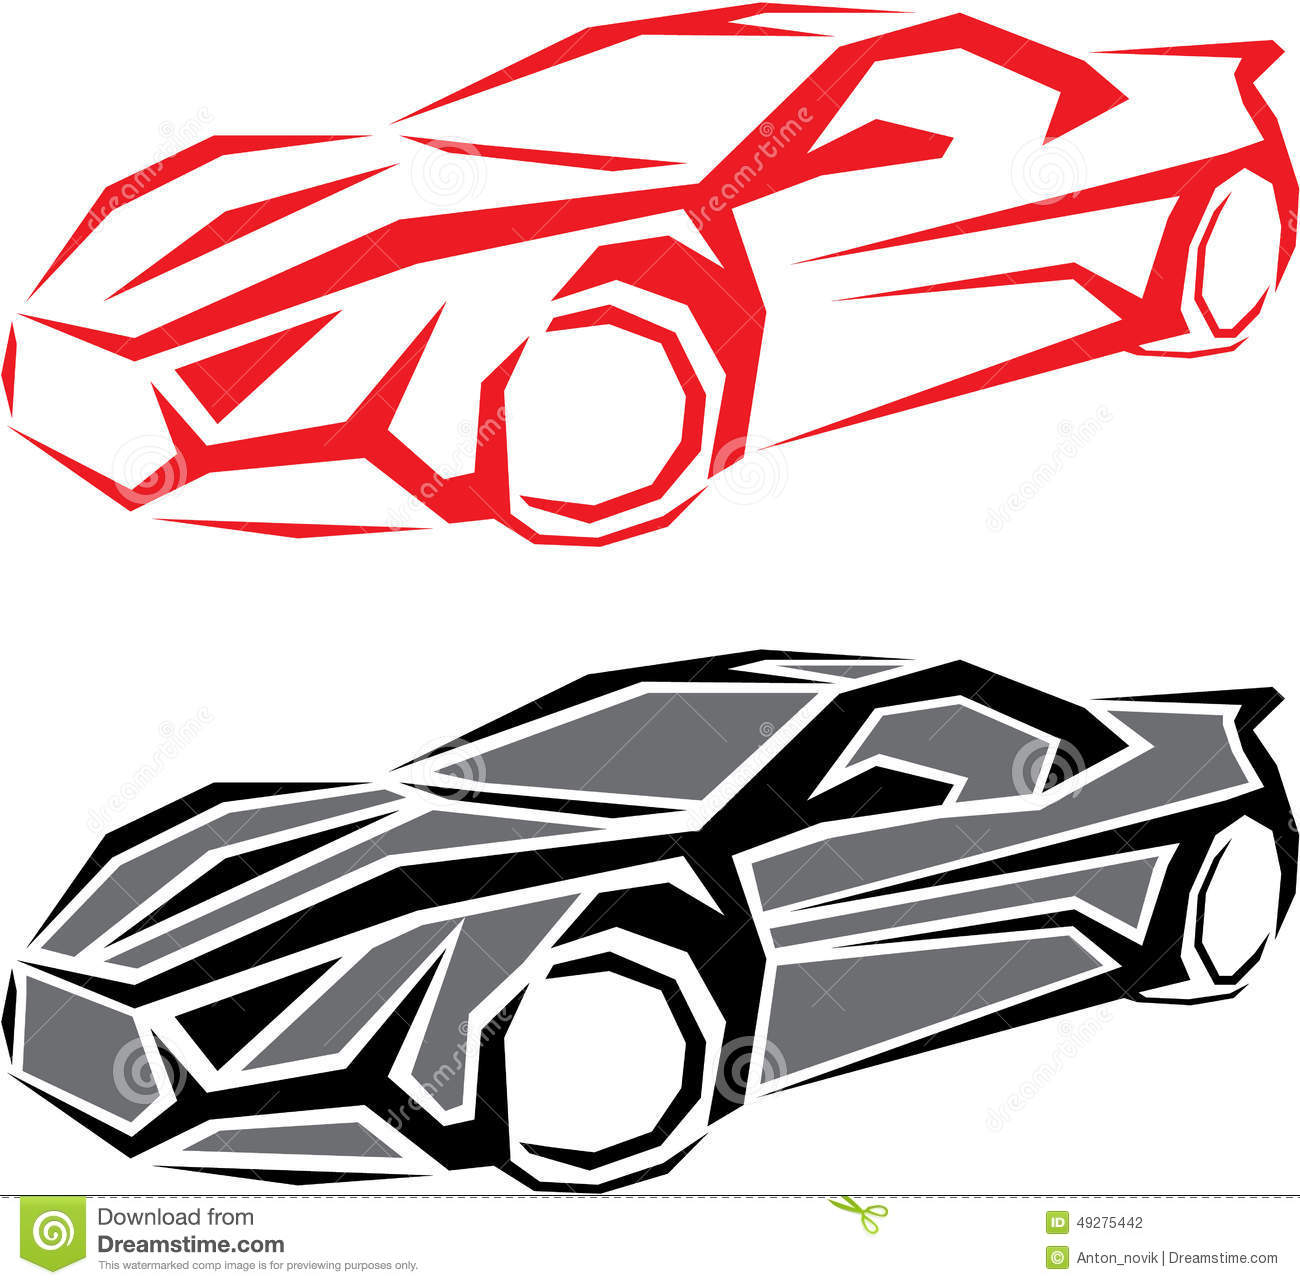 vehicle diagram clip art 2002 honda accord audio wiring stylized car stock vector image of outline power